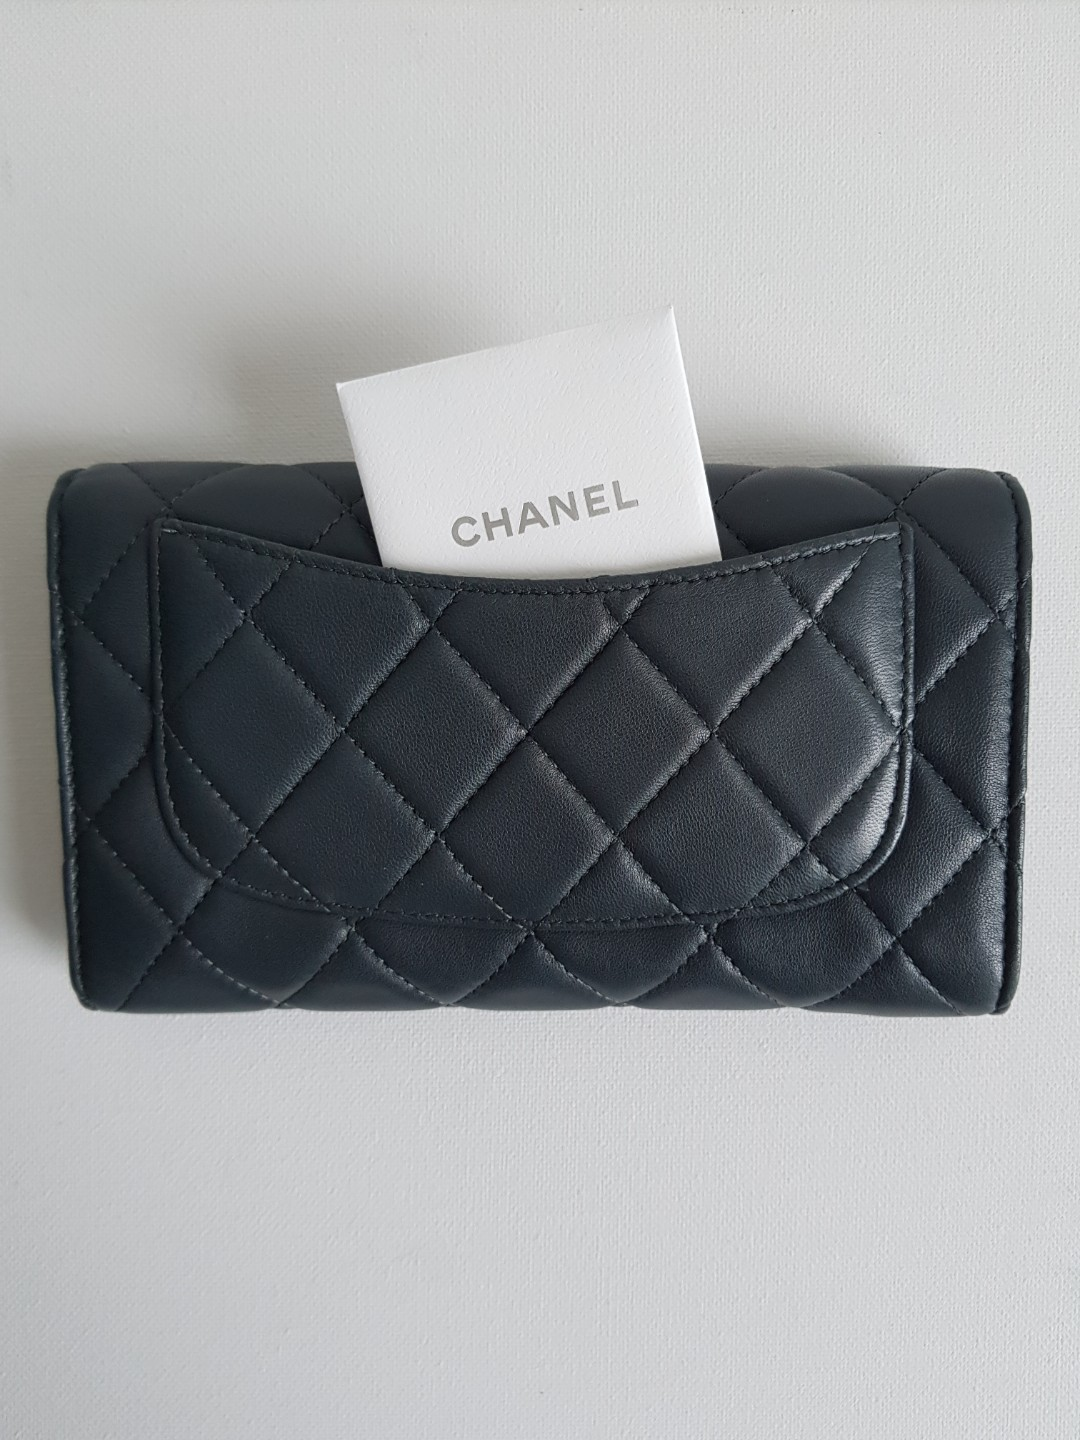 371a644900b7 Chanel Classic Flap Wallet, Luxury, Bags & Wallets, Wallets on Carousell